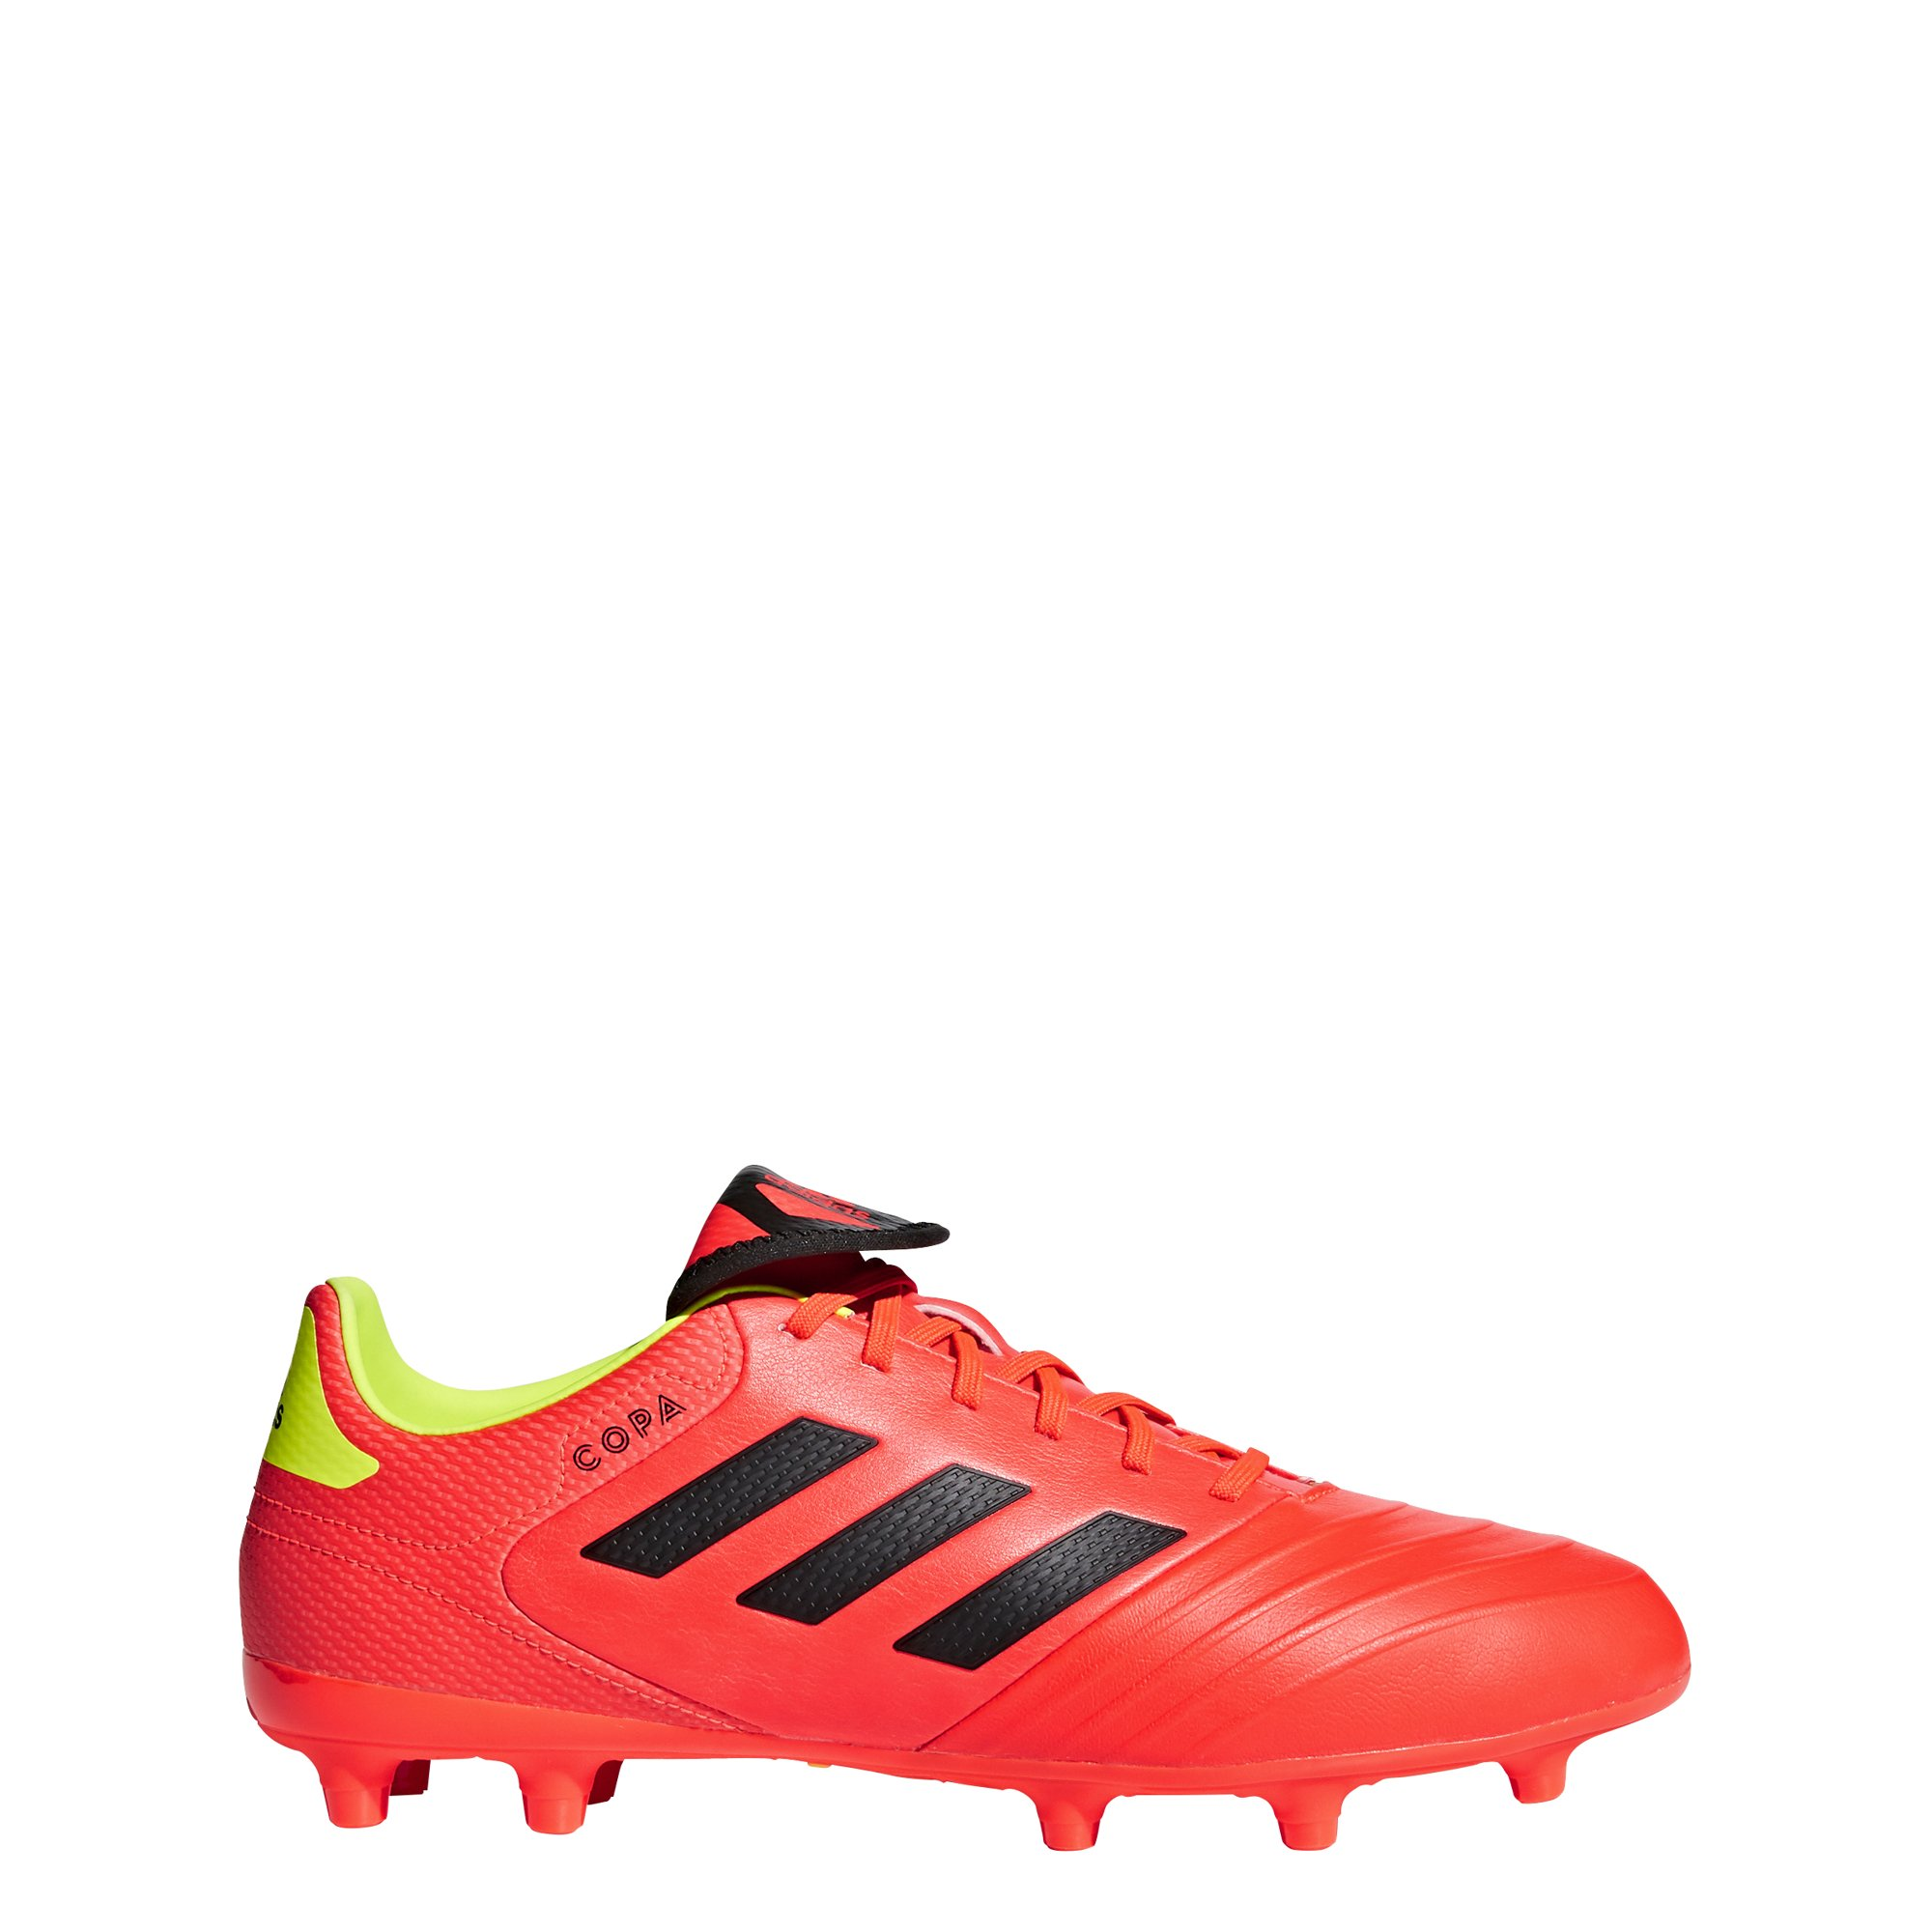 adidas Men's Copa 18.3 Firm Ground Soccer Shoe, Solar Red/Black/Solar Yellow, 11 M US